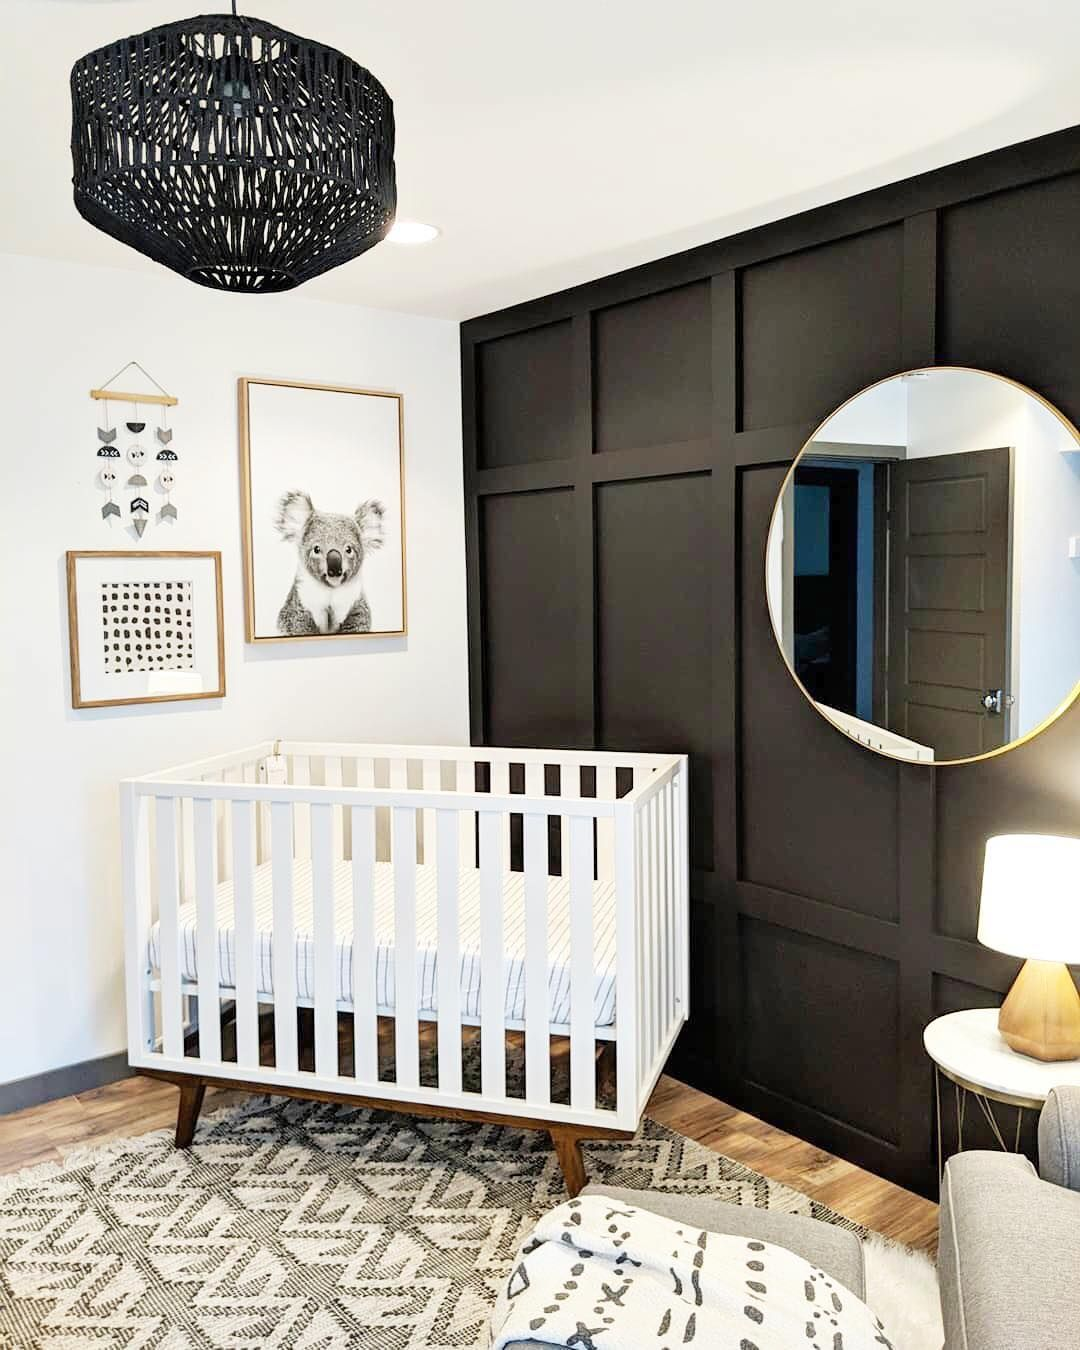 "Project Nursery on Instagram: ""Board + Batten accent walls are on our 2019 Nursery Trends list and it's easy to see why! Plus, we're loving this dark and moody take on…"" #boardandbattenwall"